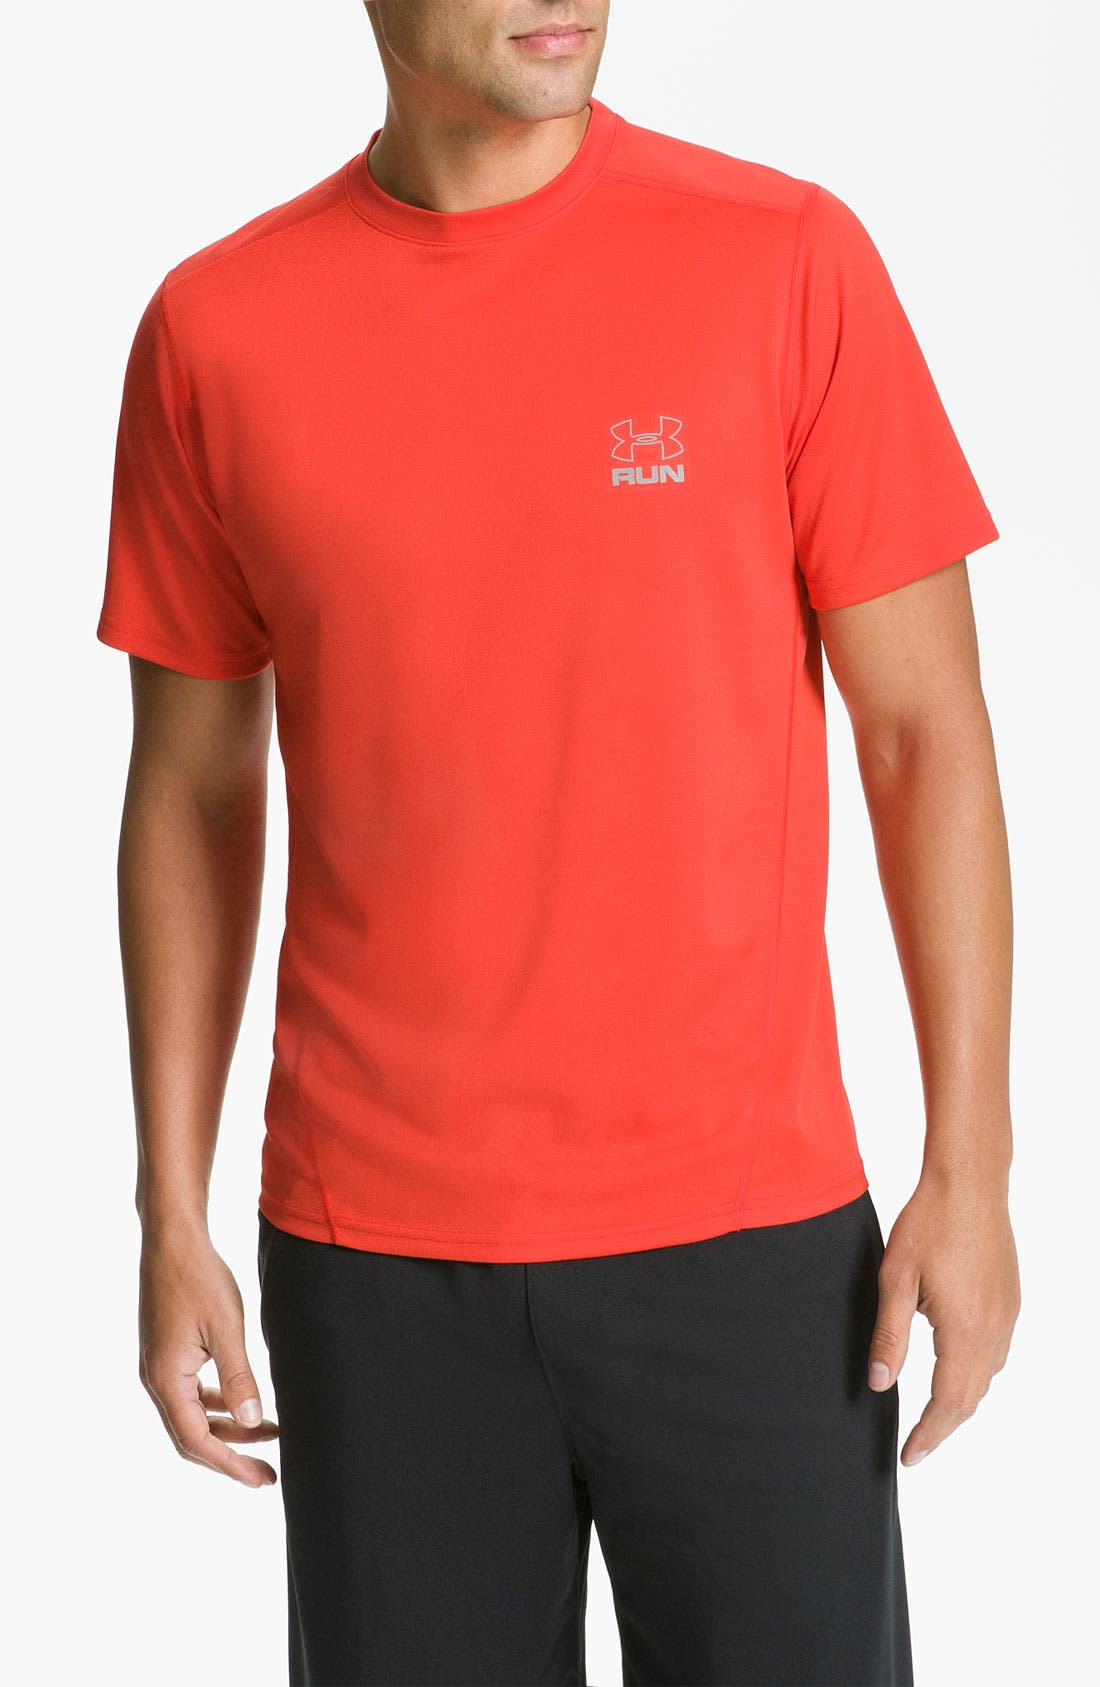 Main Image - Under Armour 'Run' HeatGear® Short Sleeve T-Shirt